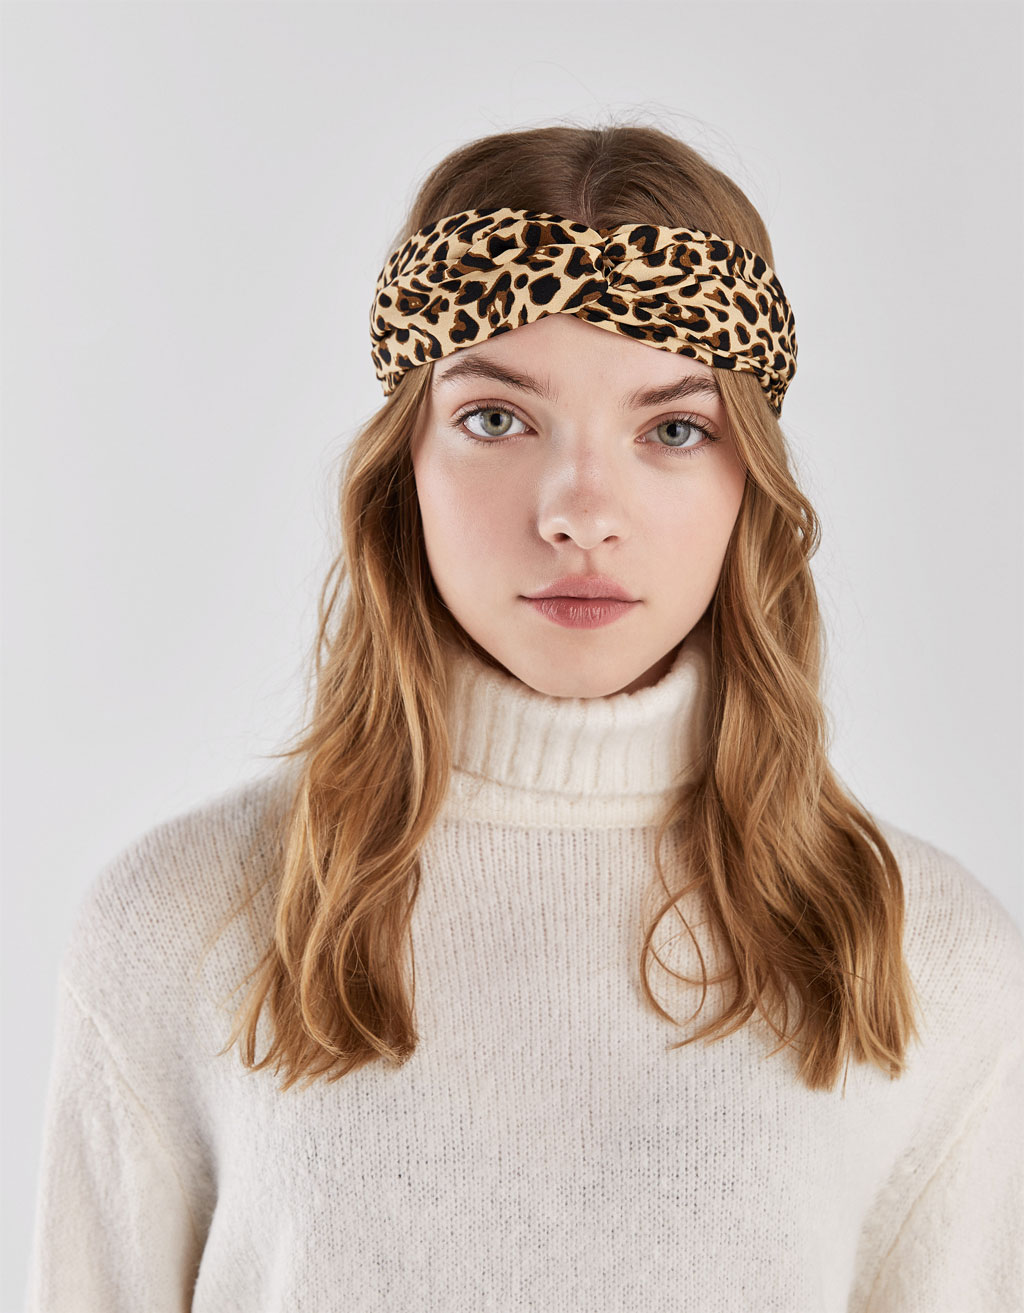 Turbante con estampado de leopardo